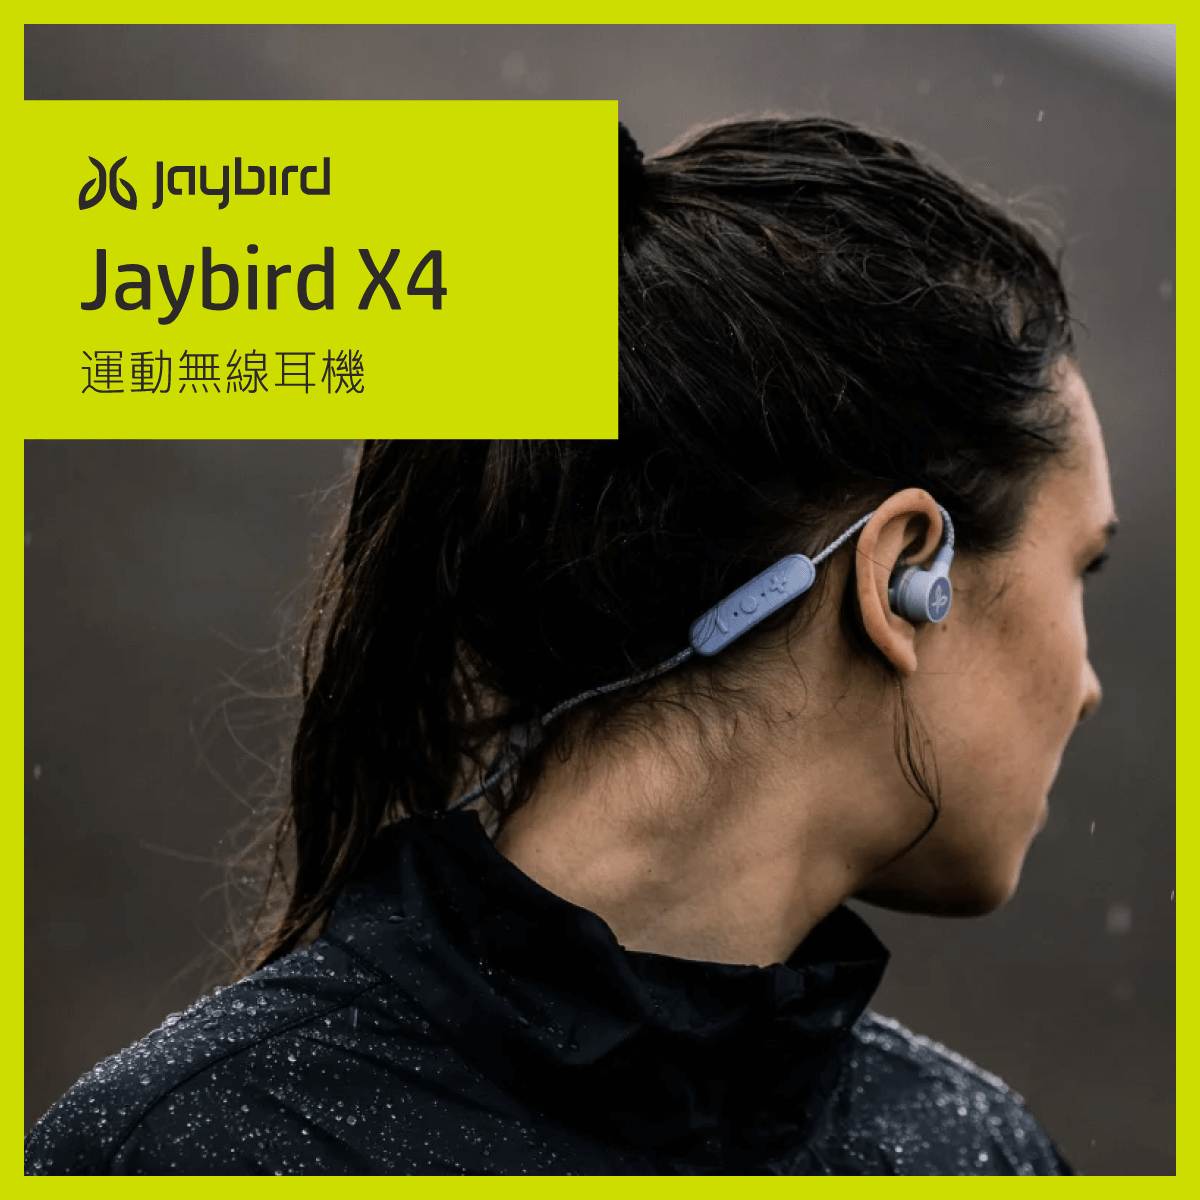 Jaybird X4 Sports Earphone - BLACK METALLIC/FLASH